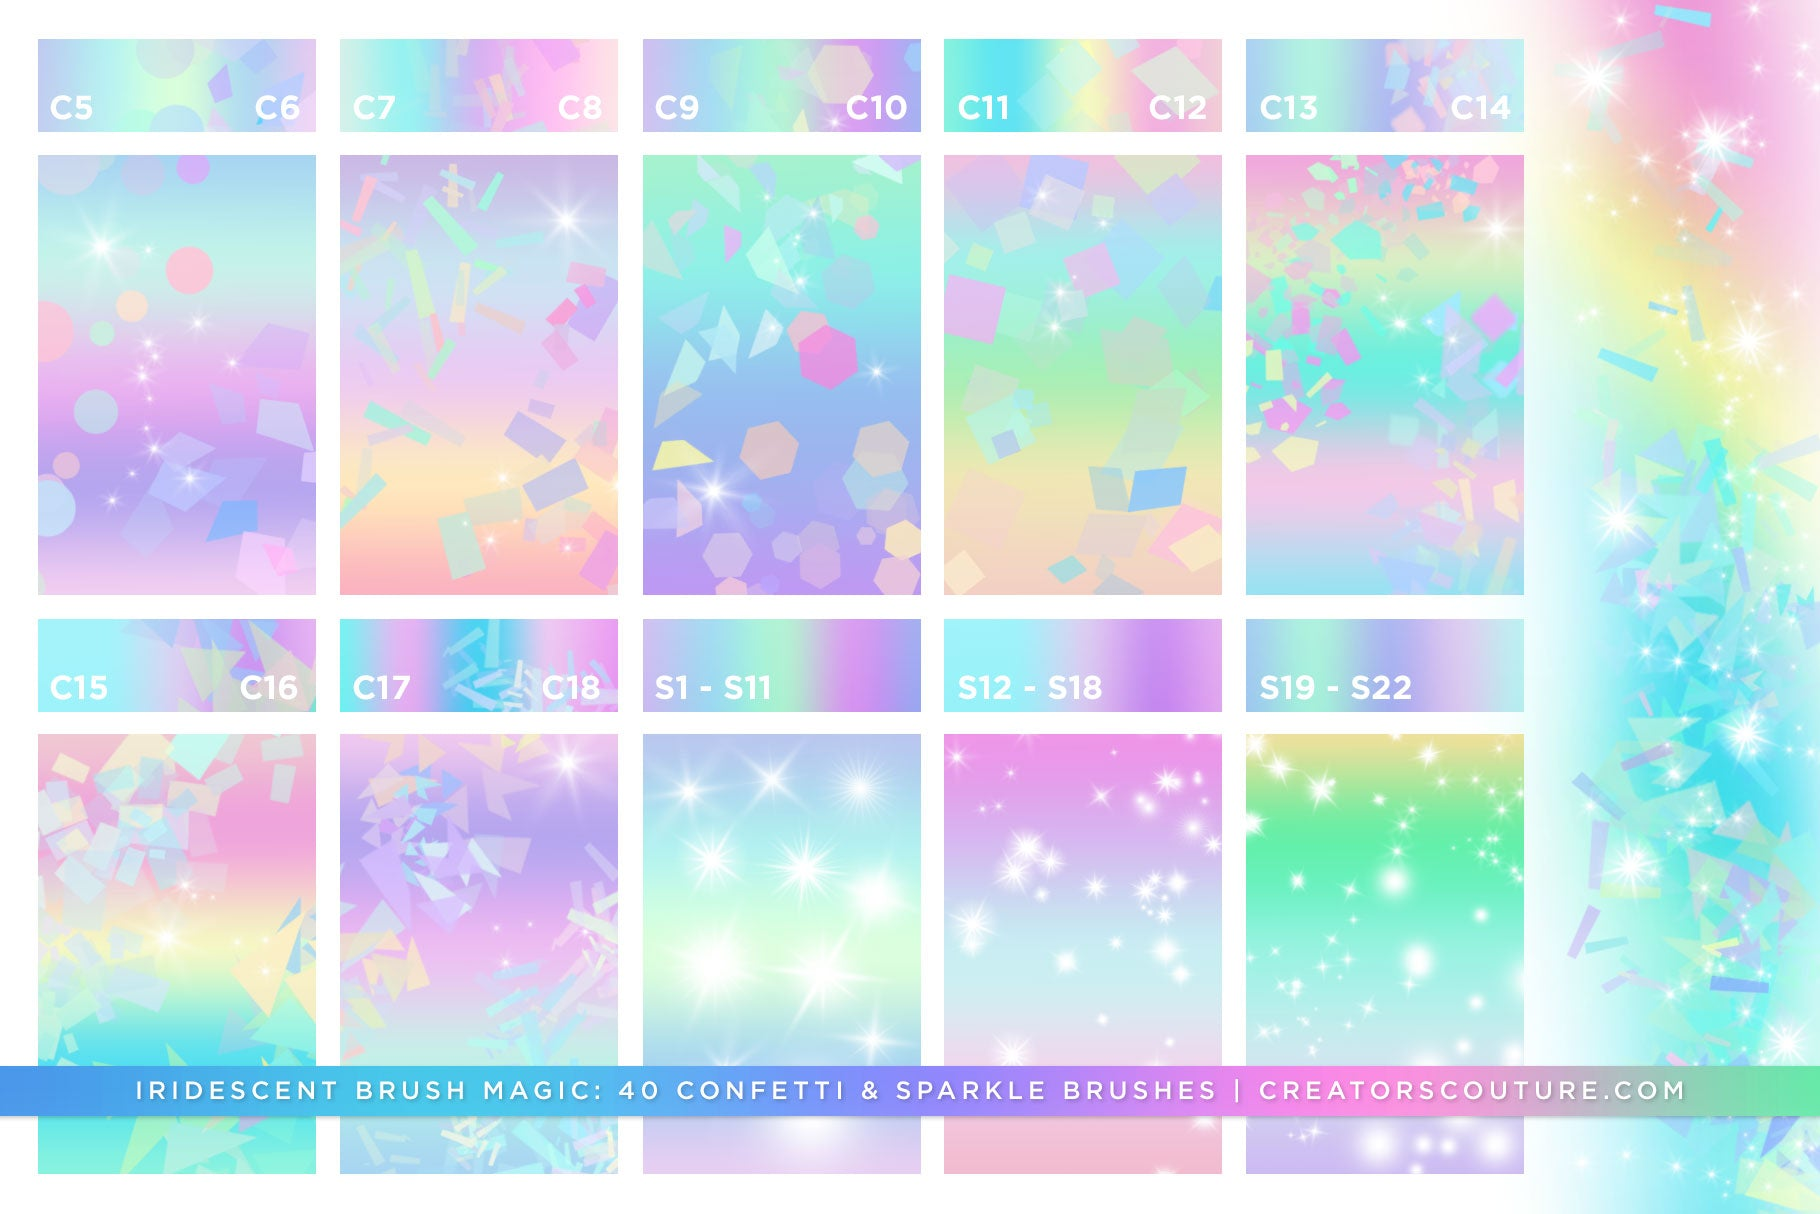 Iridescent & Holographic Photoshop Brushes, Color Palettes, & Effects, confetti brush preview 3